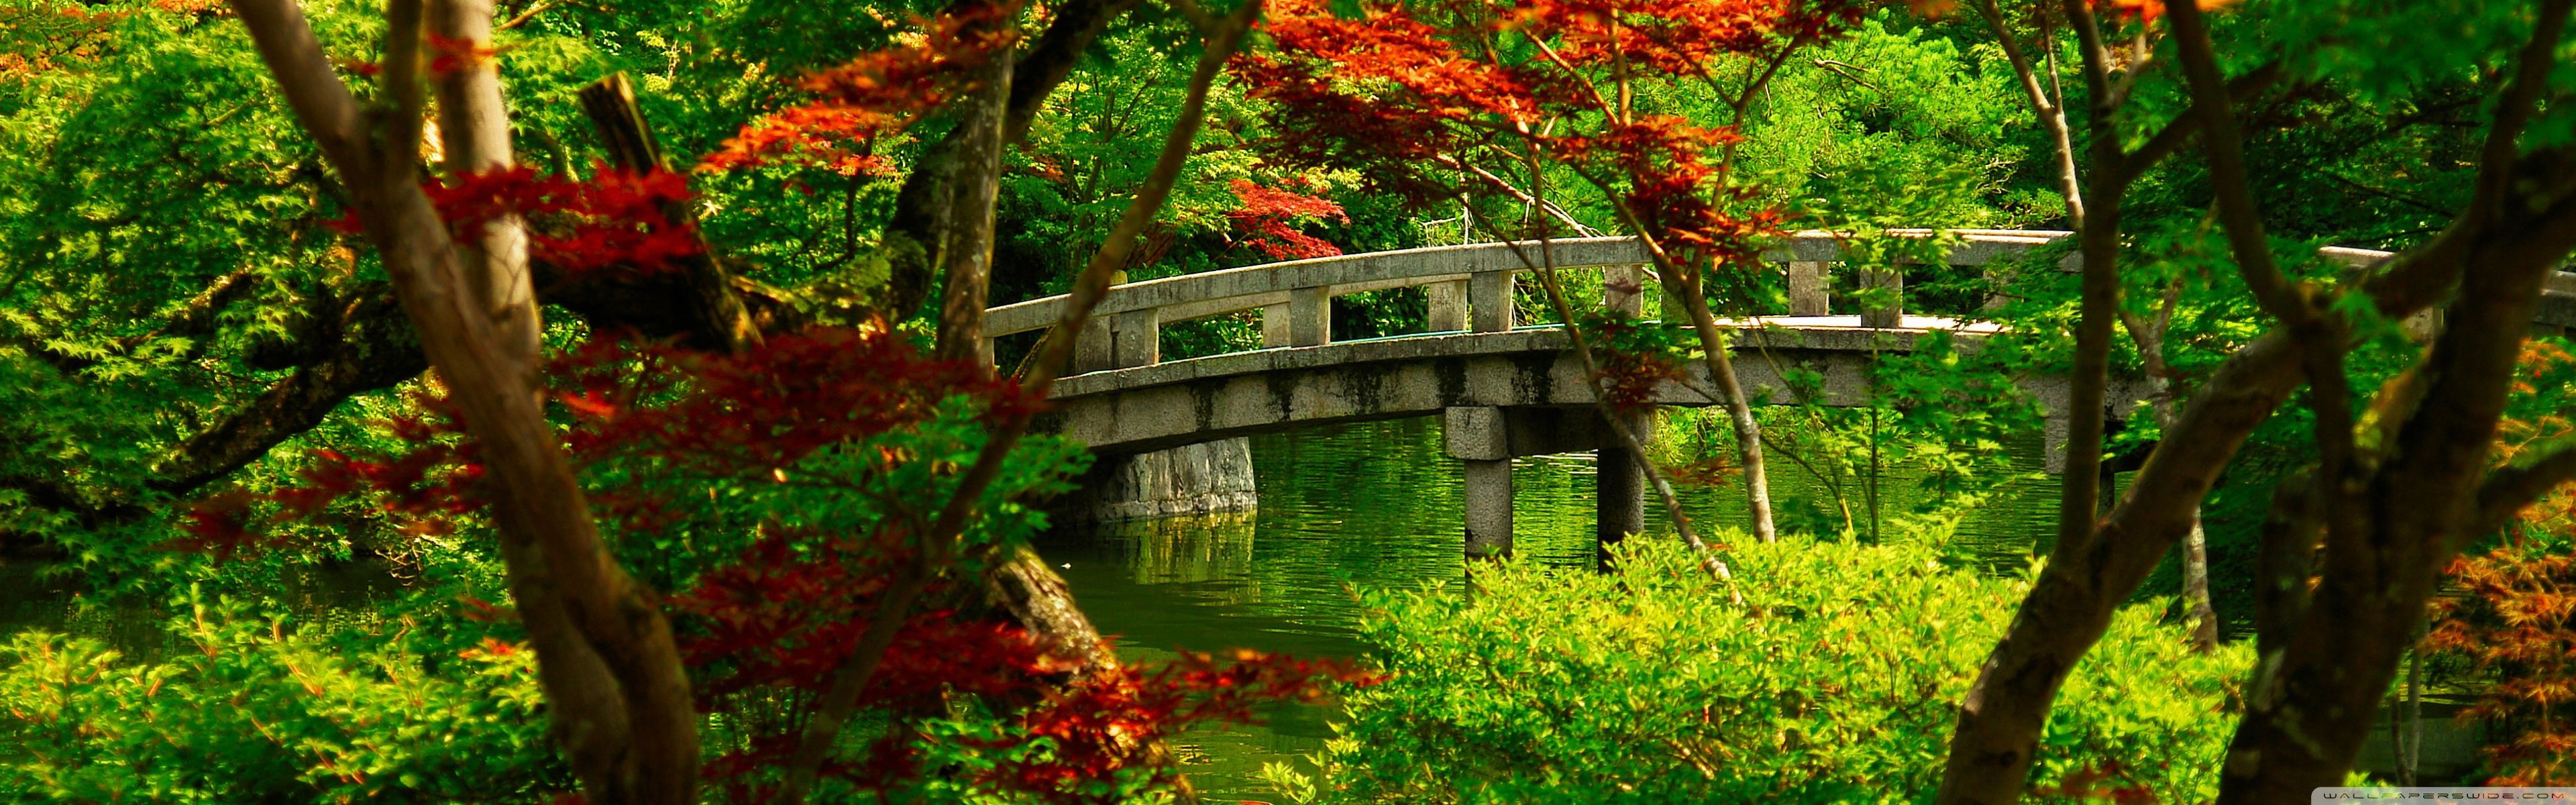 Japanese Garden Kyoto HD Desktop Wallpaper Widescreen High